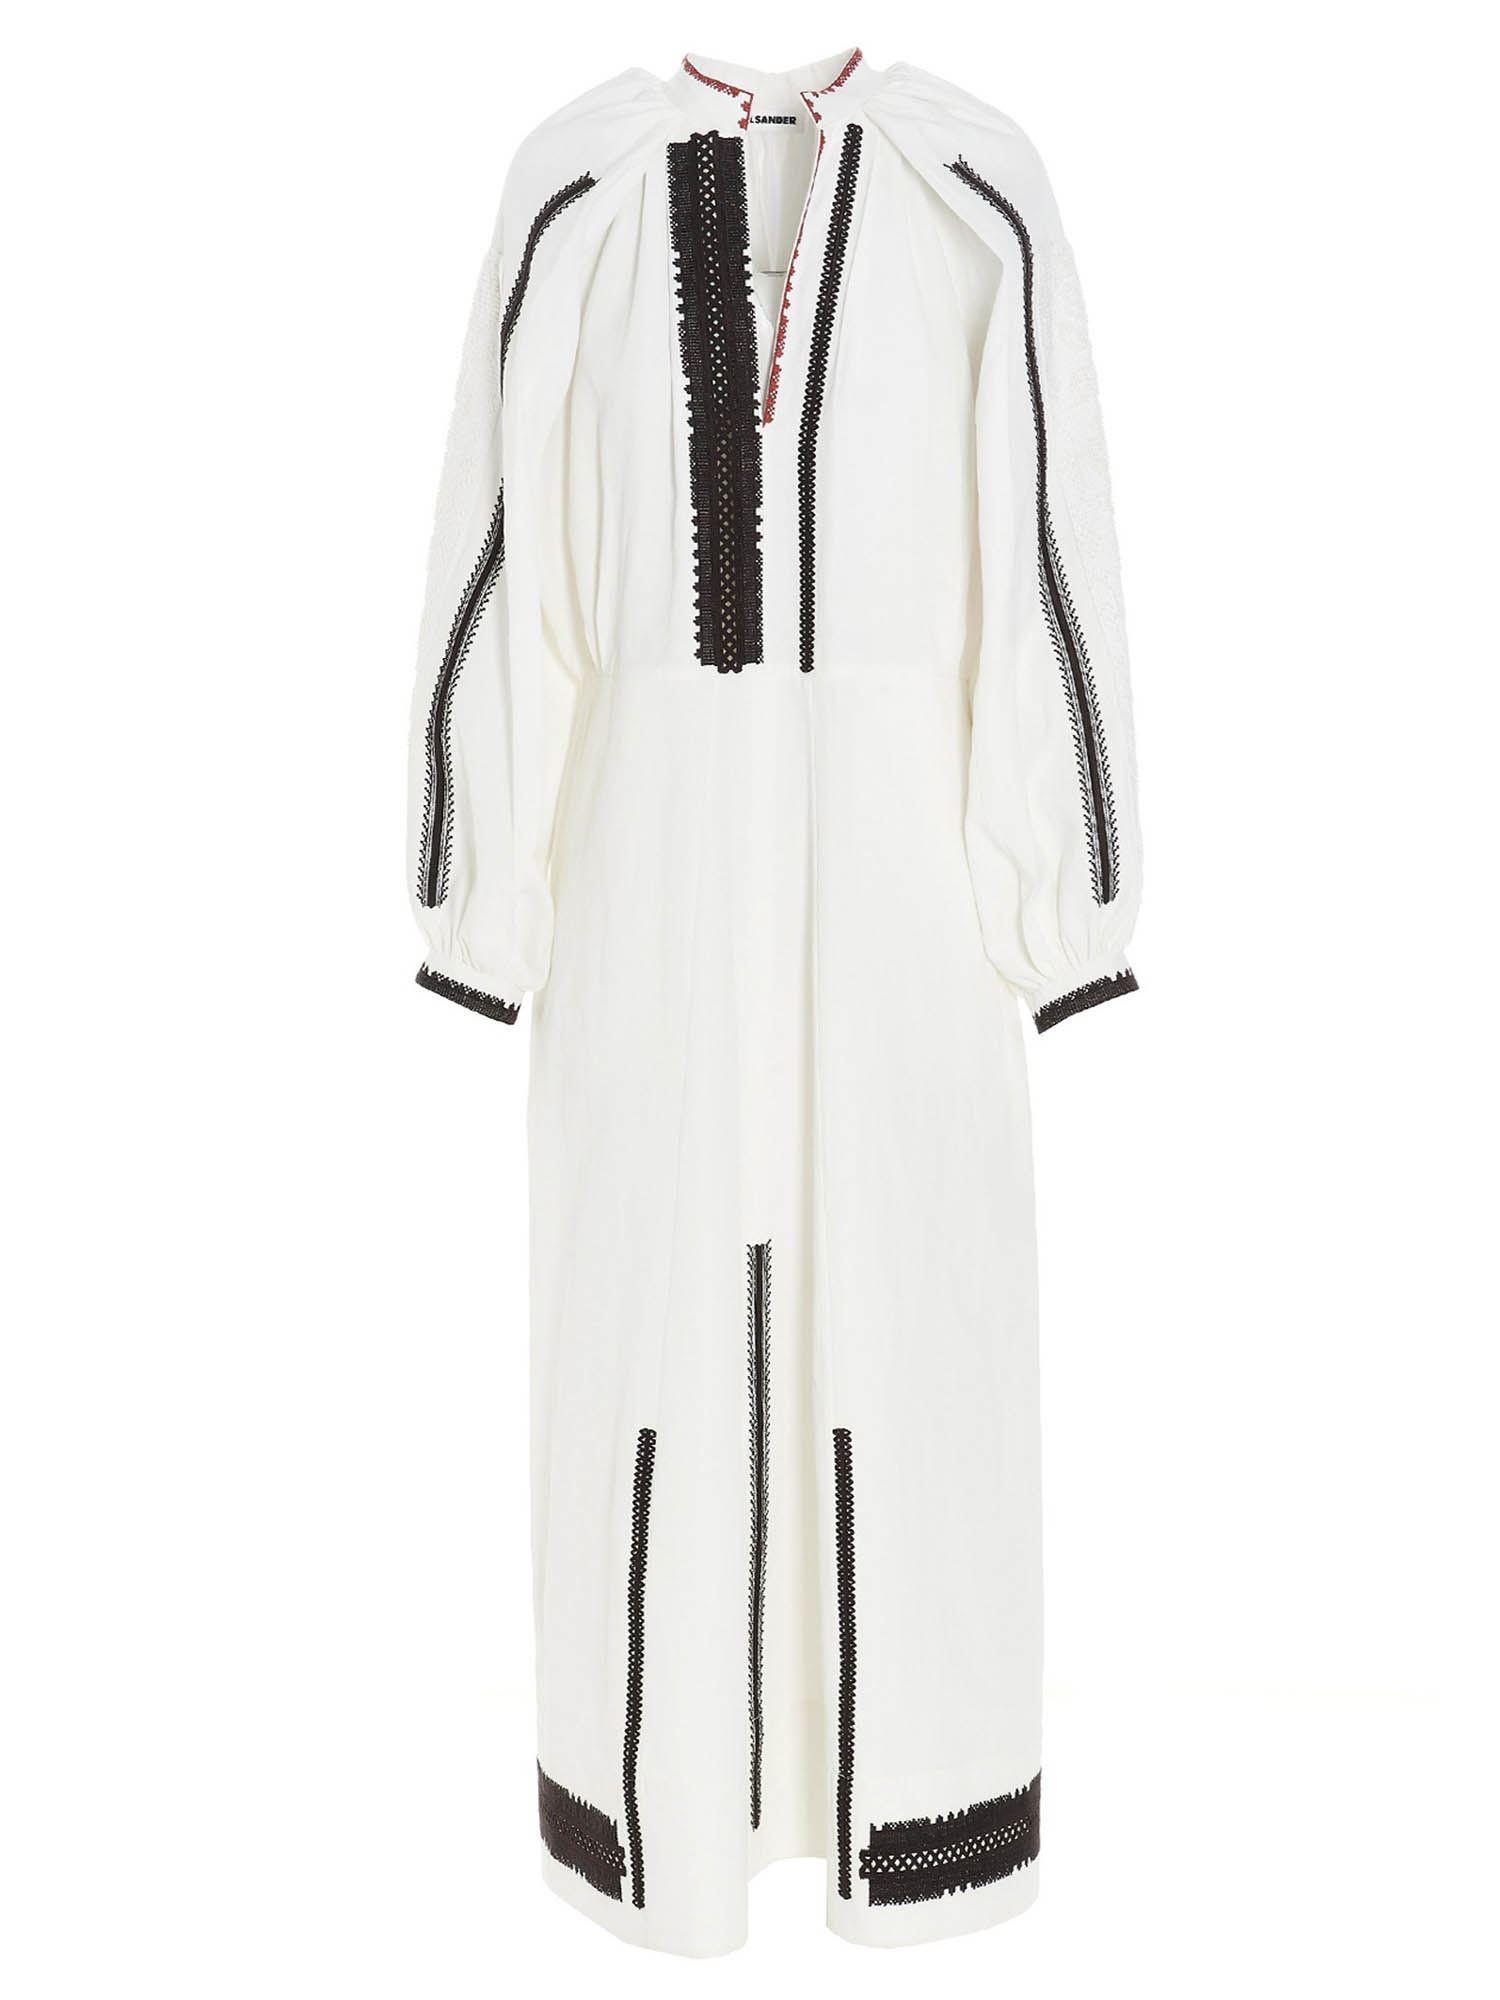 Jil Sander Linens CONTRASTING EMBROIDERY DRESS IN WHITE